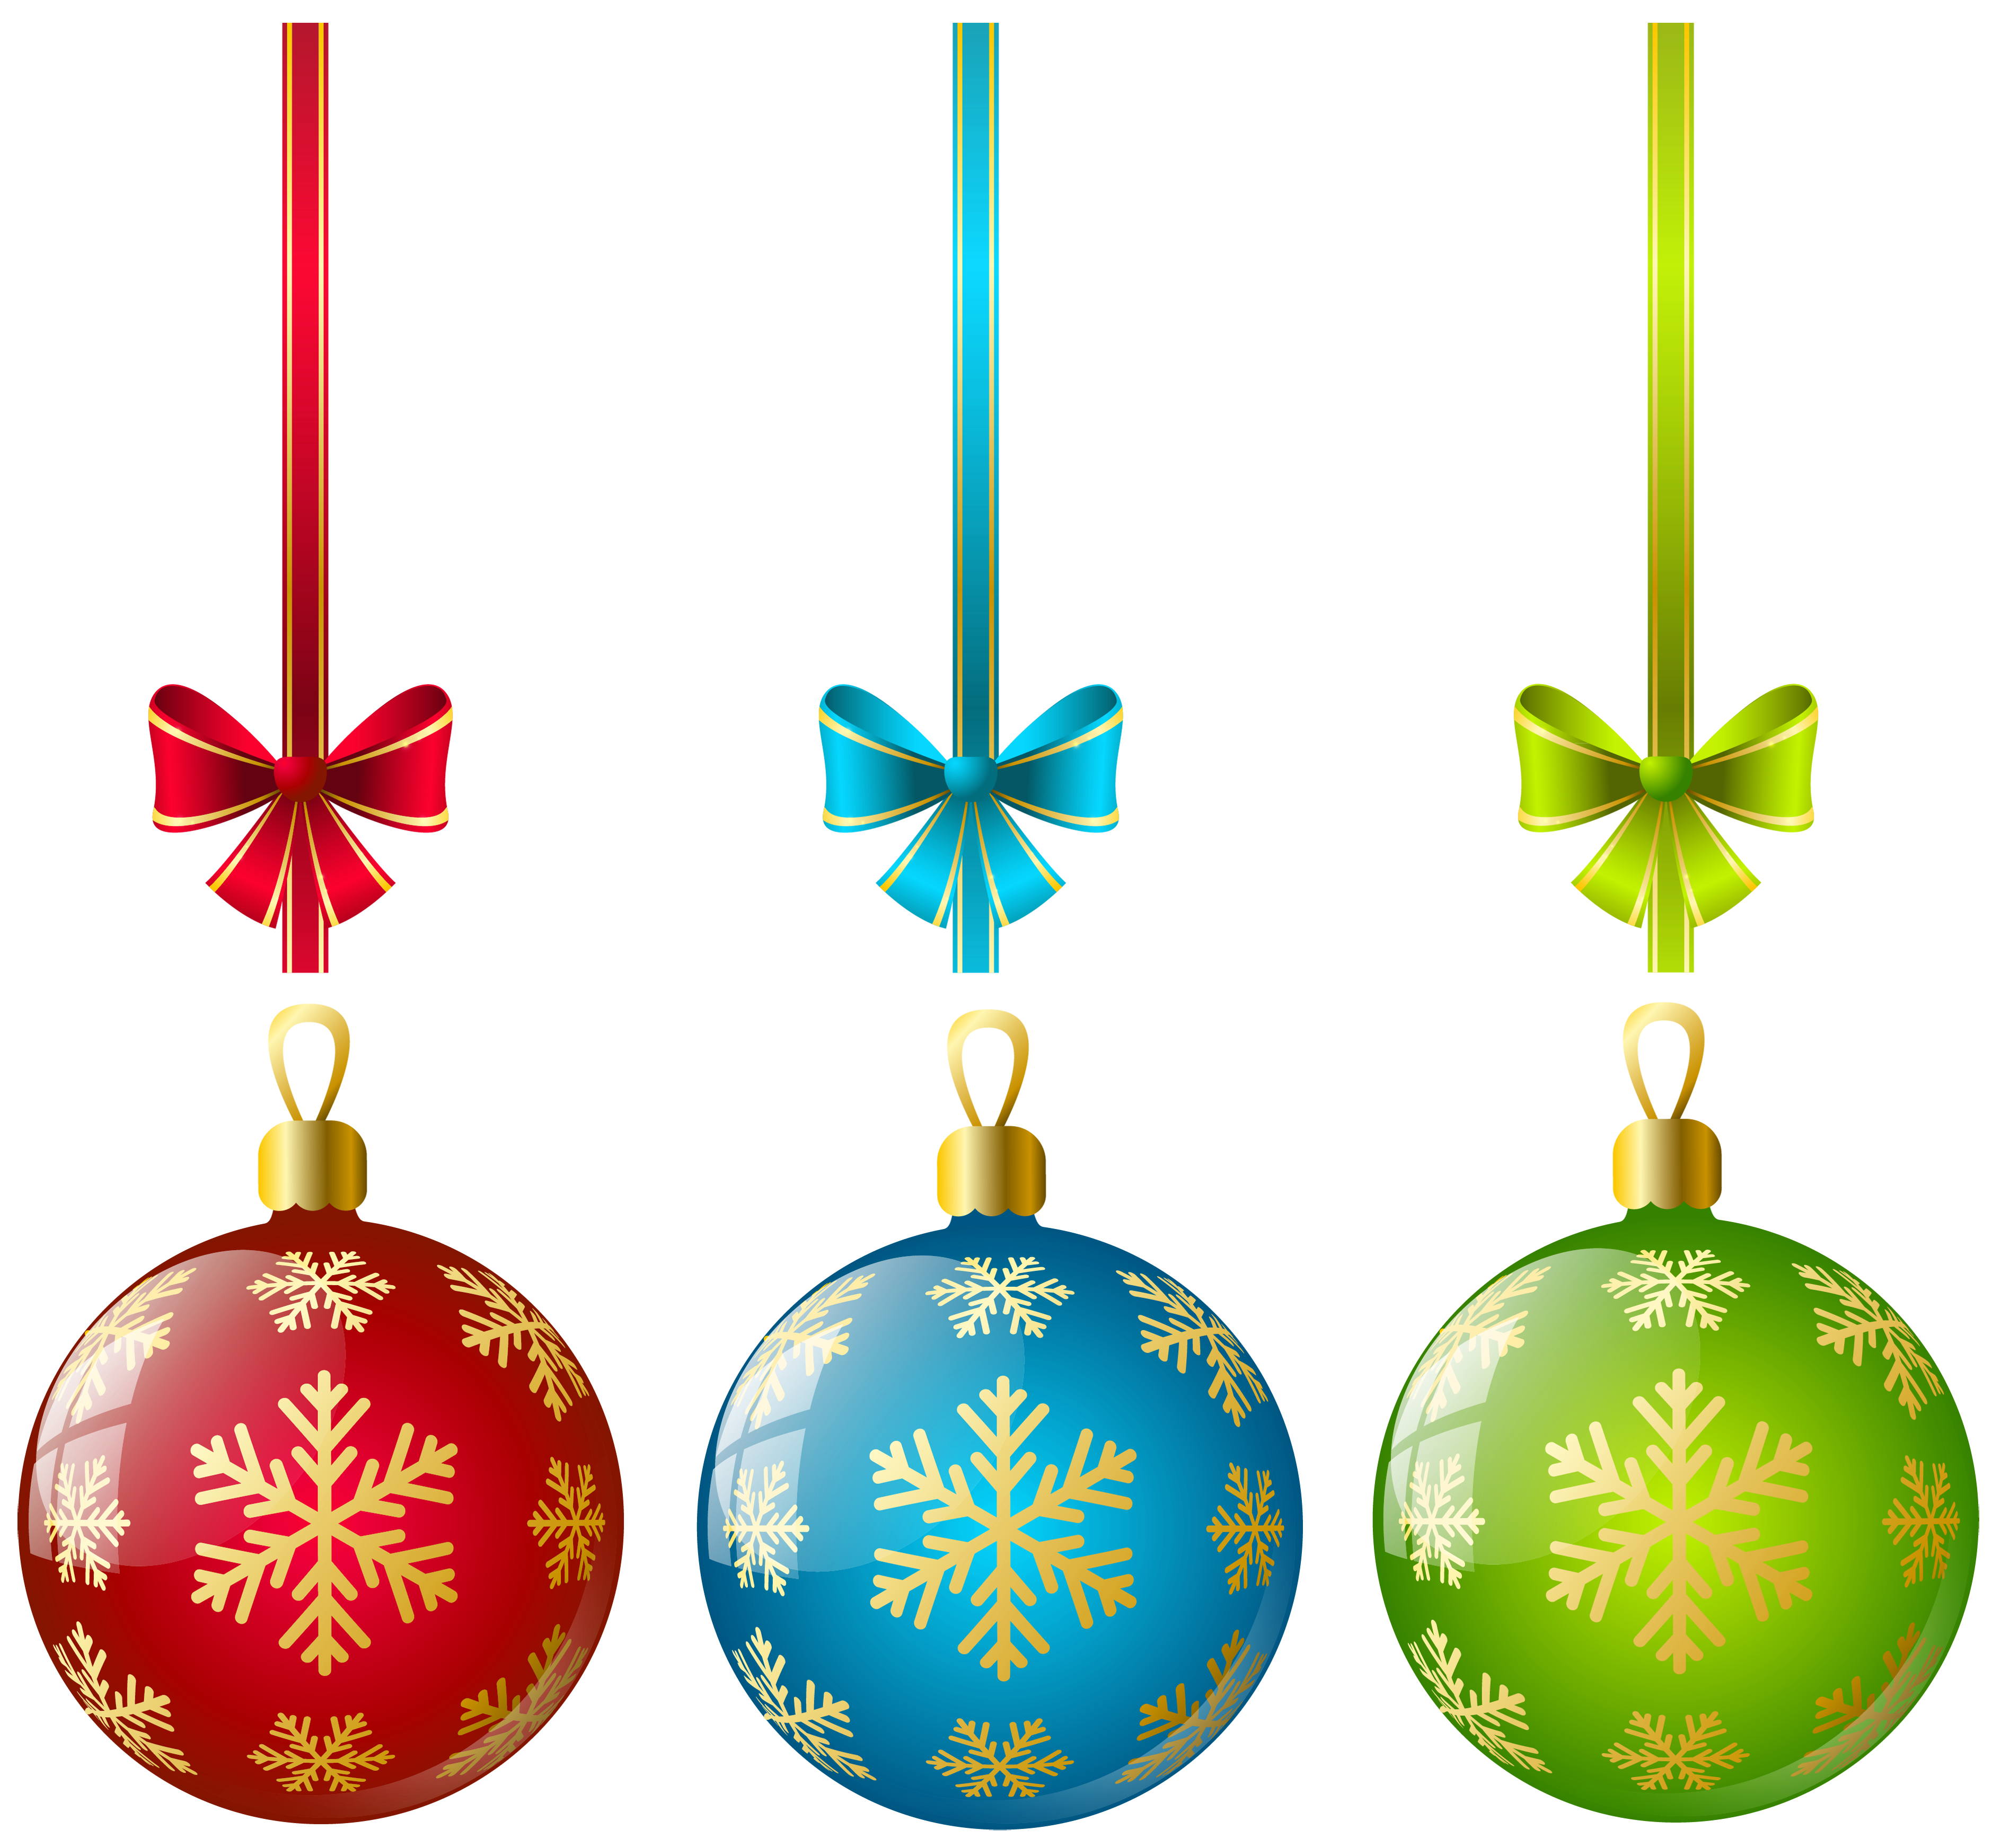 Christmas Ornaments File PNG Image